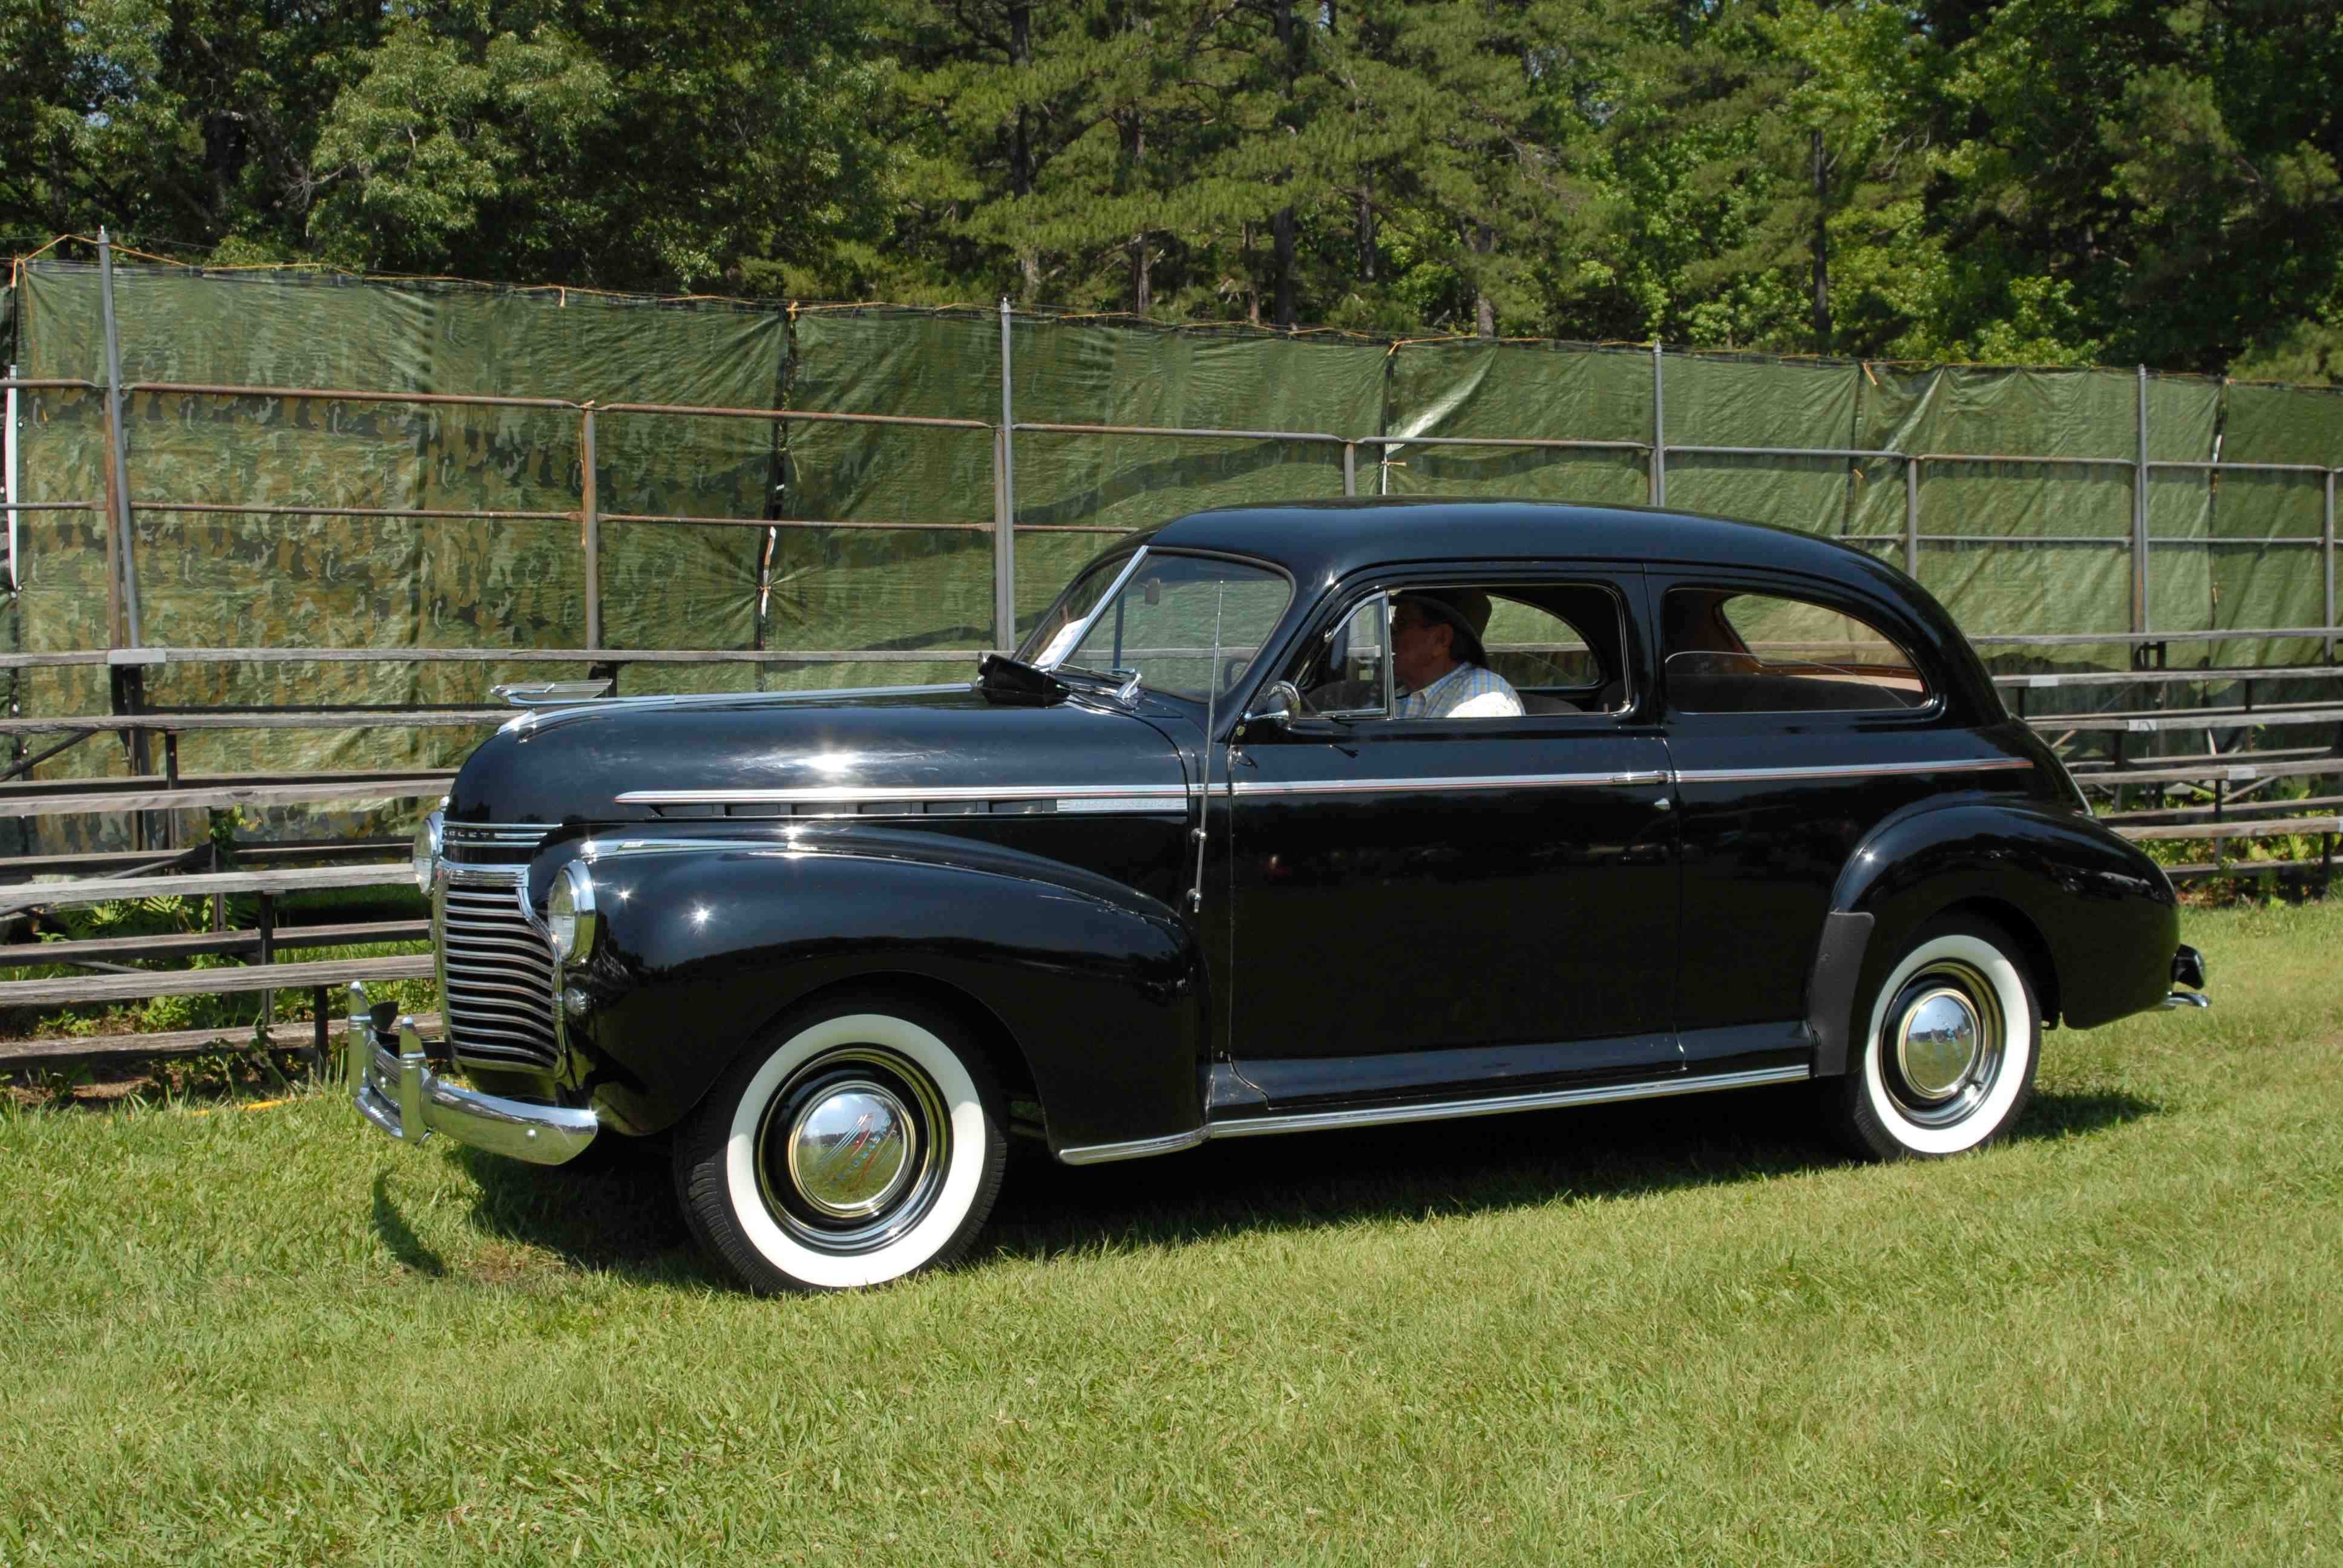 1941 Chevrolet wallpapers, Vehicles, HQ 1941 Chevrolet pictures   4K